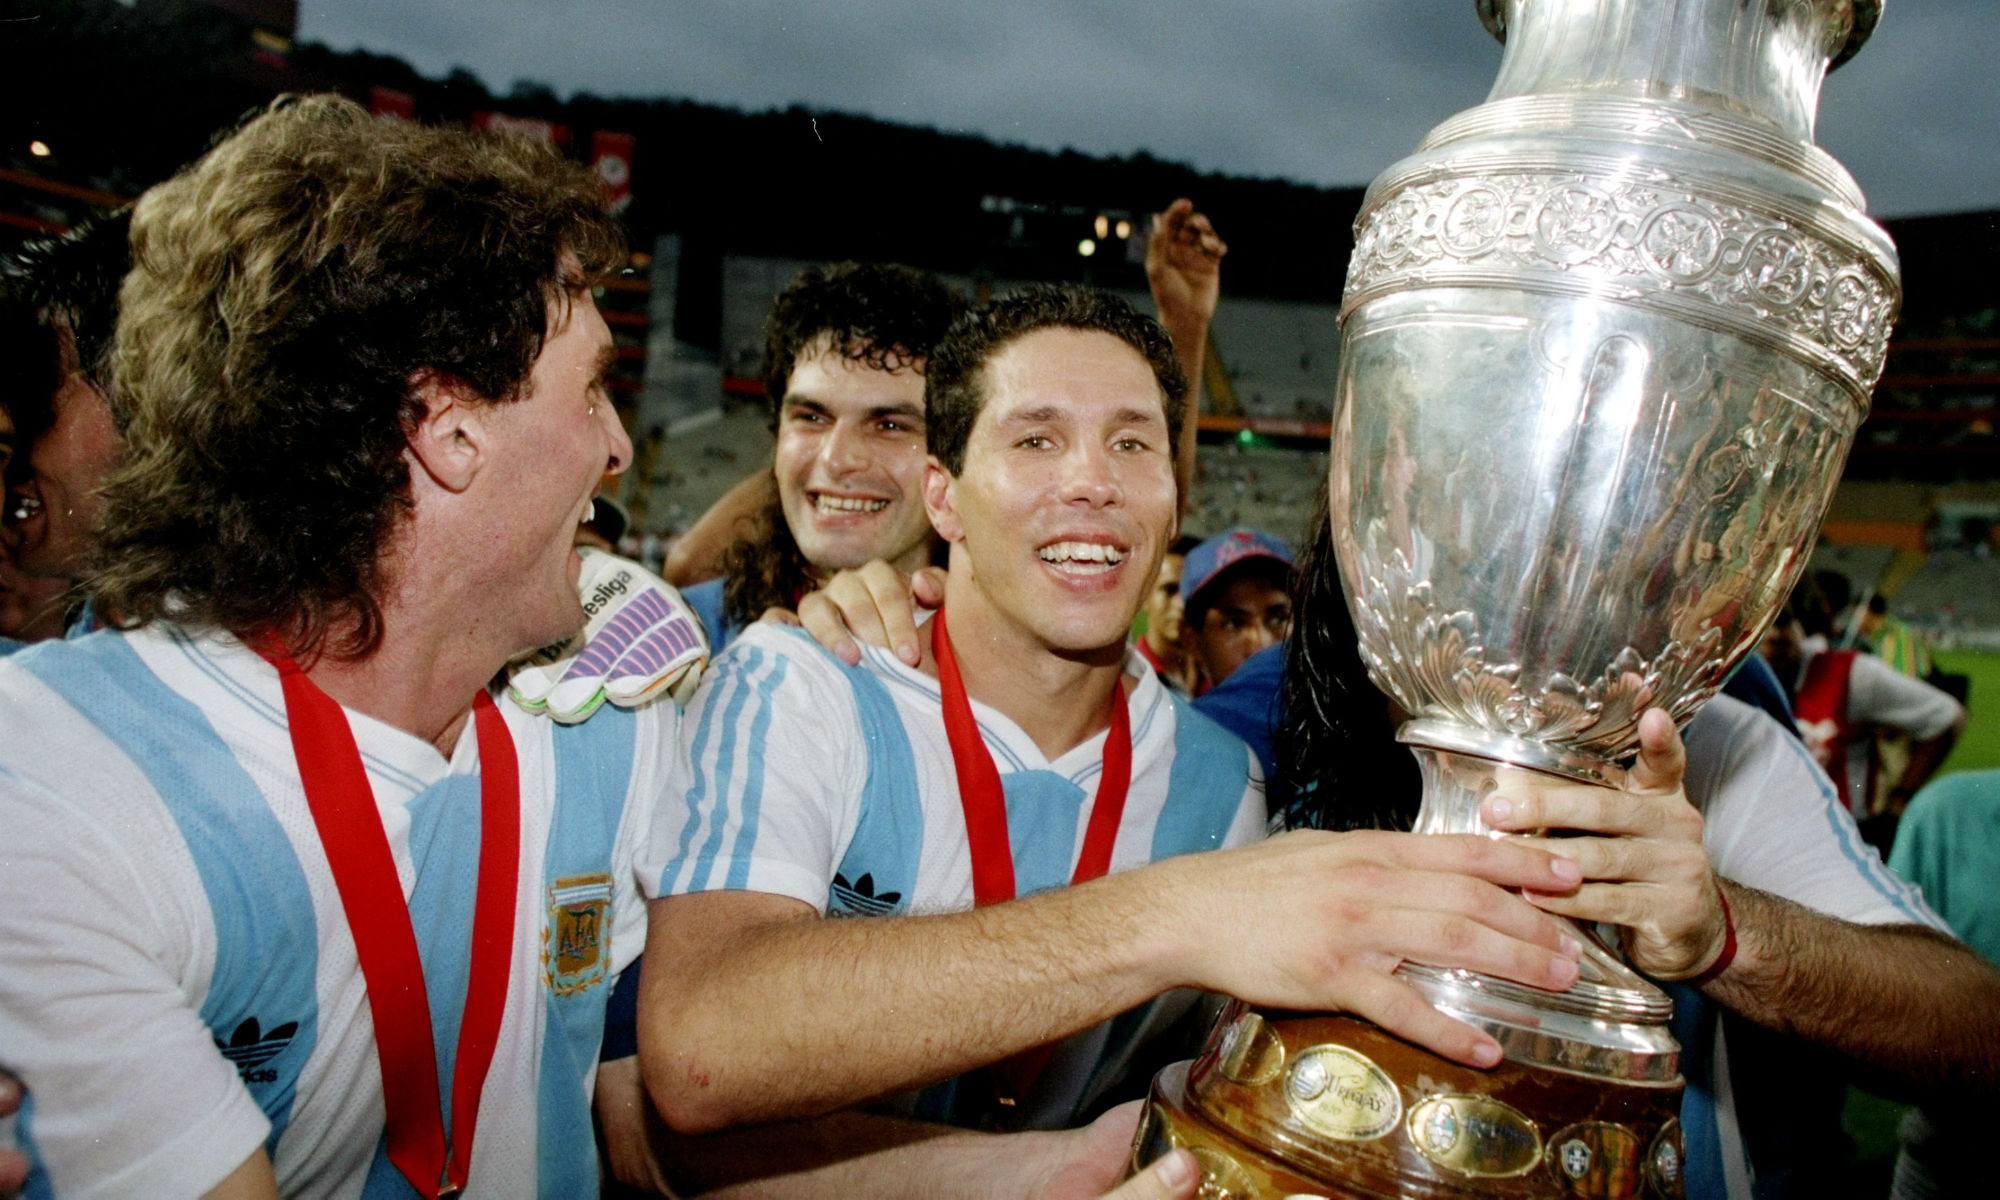 Diego Simeone lifts the cup in 1991 after Argentina snap a 32-year drought without a Copa America win.